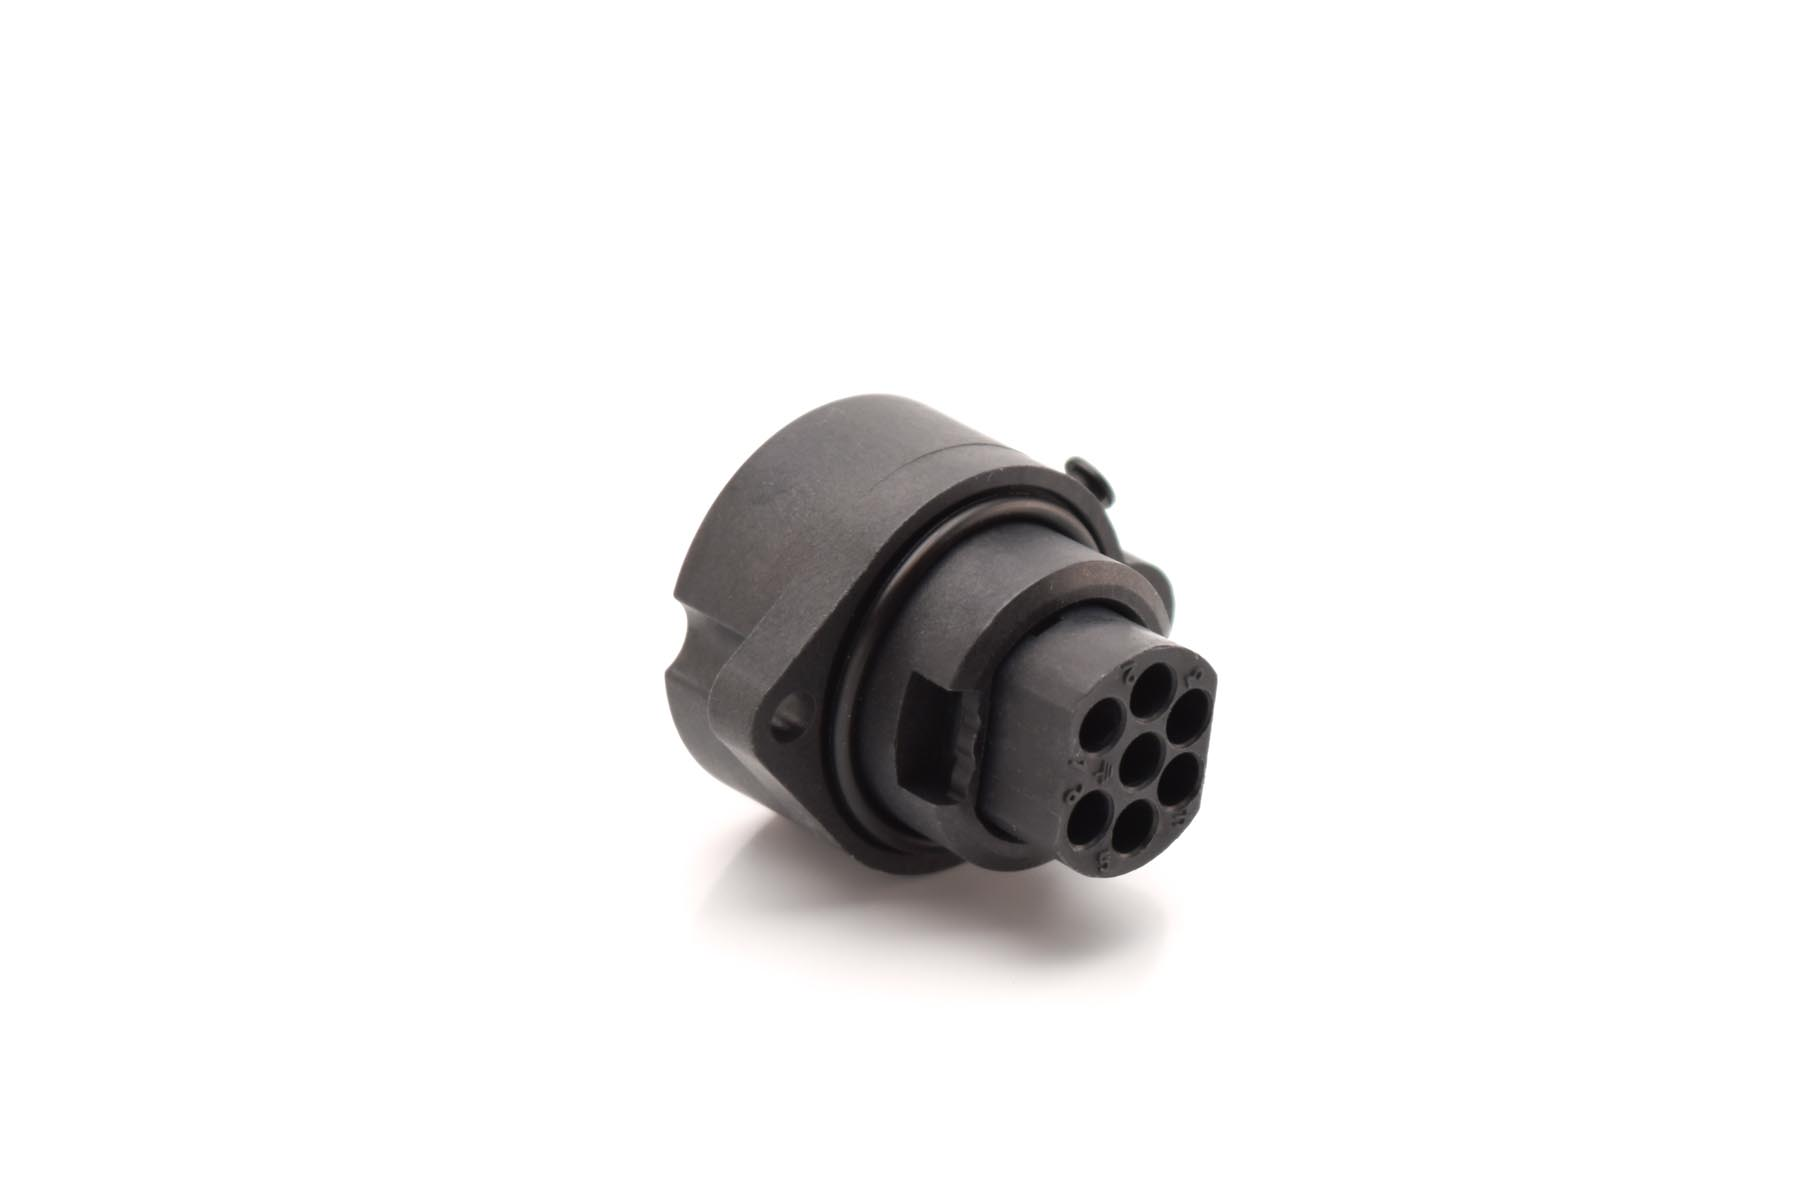 12 Contacts Circular Connector Contacts Not Supplied Crimp Pin CN0966 Series CN0966A22A12P6-040 CN0966A22A12P6-040 Straight Plug